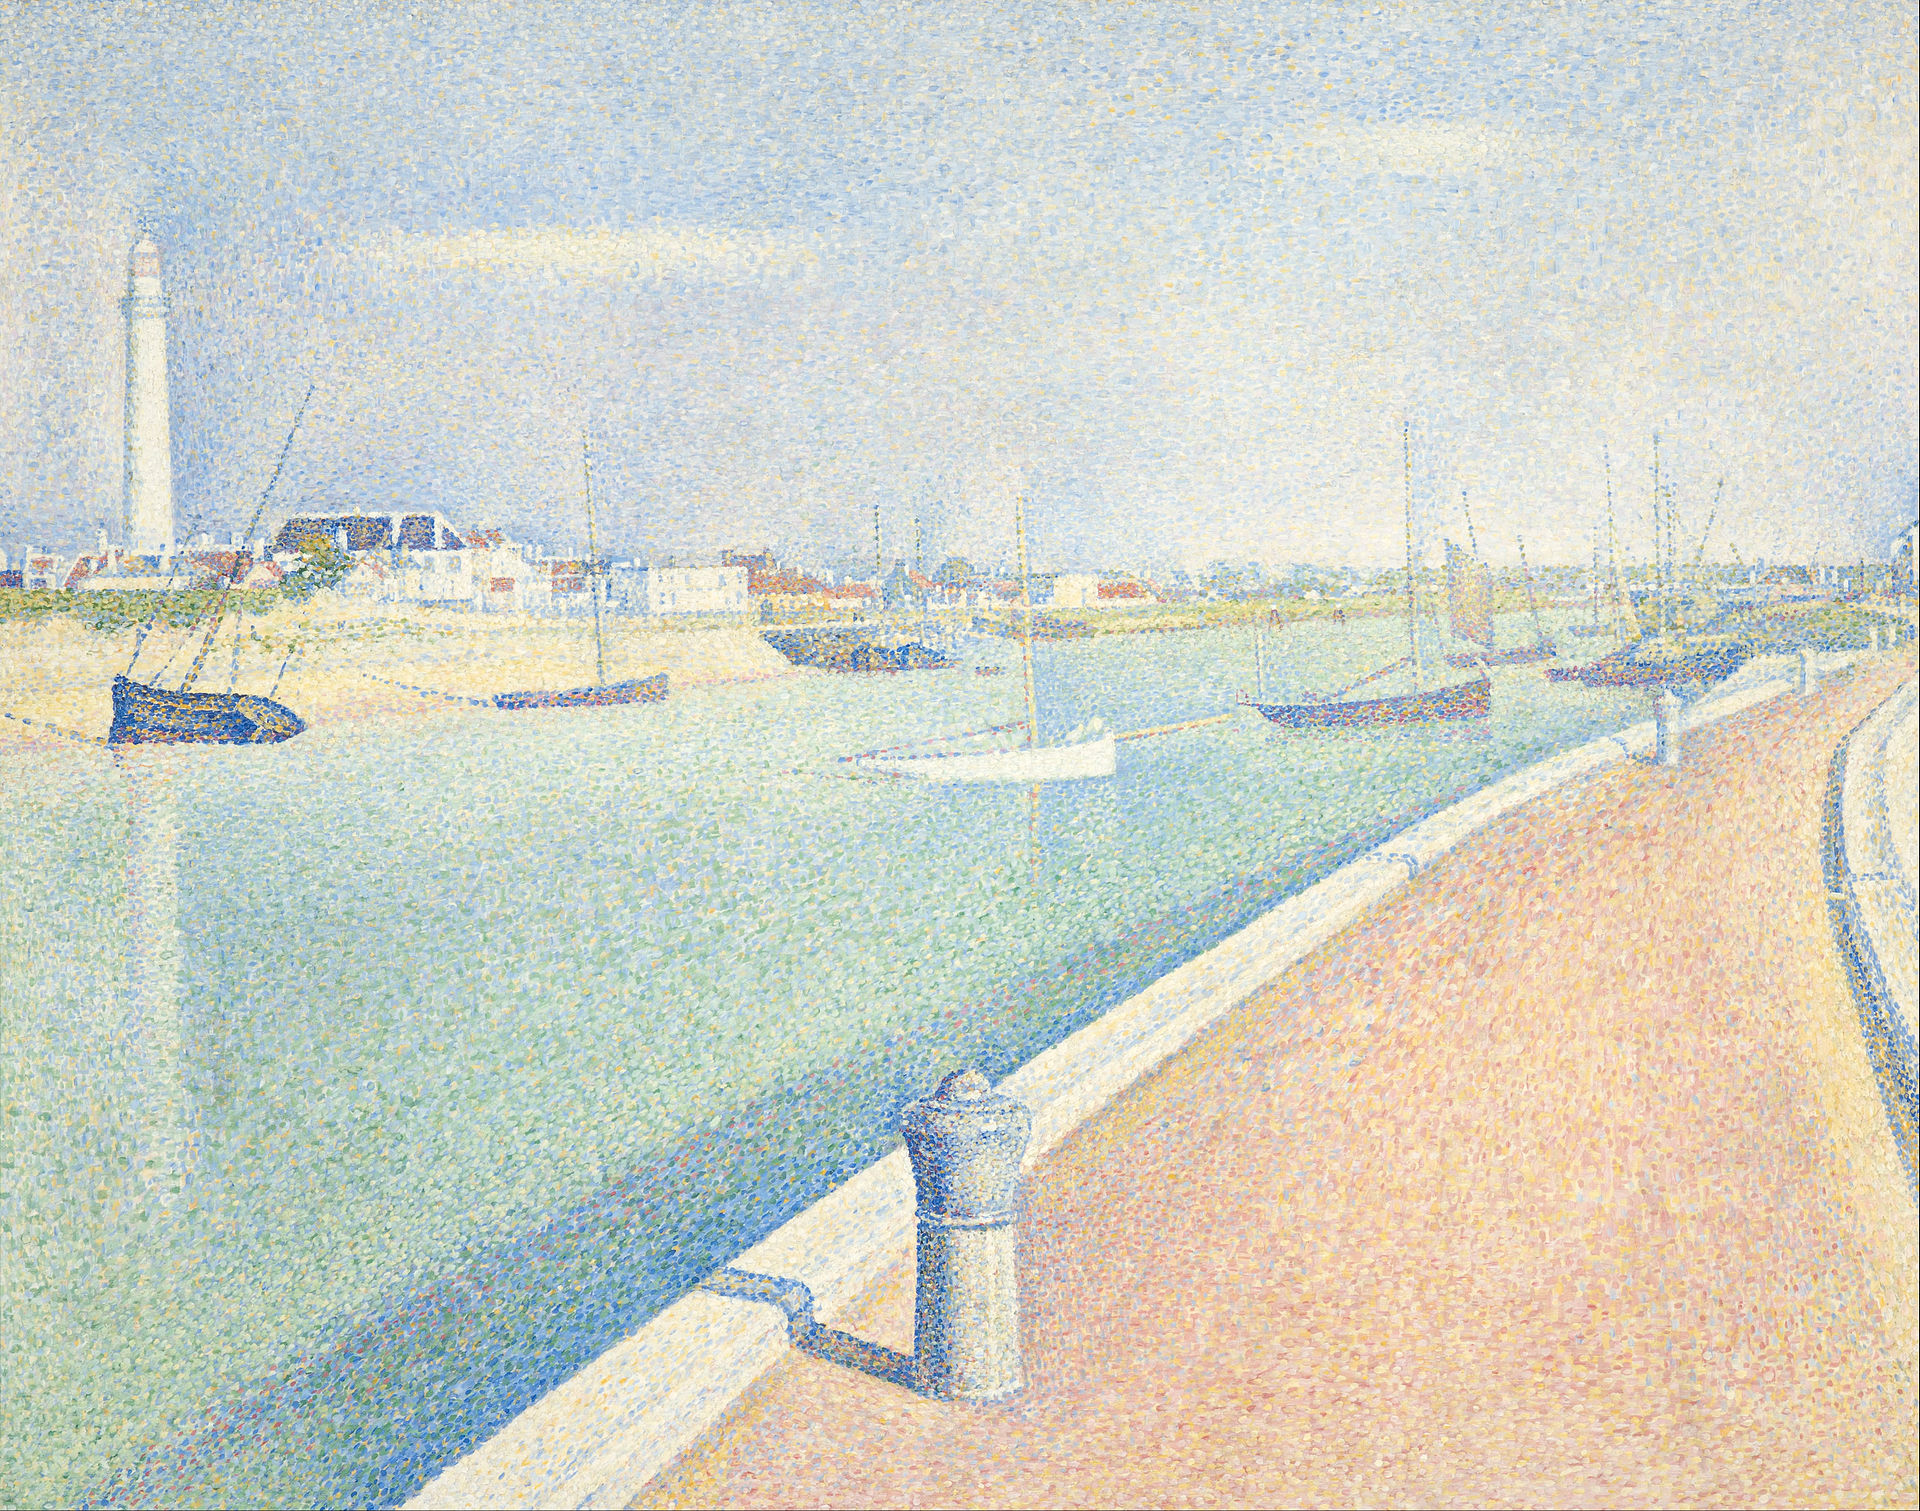 Seurat, Georges - The Channel of Gravelines, Petit Fort Philippe - Google Art Project.jpg